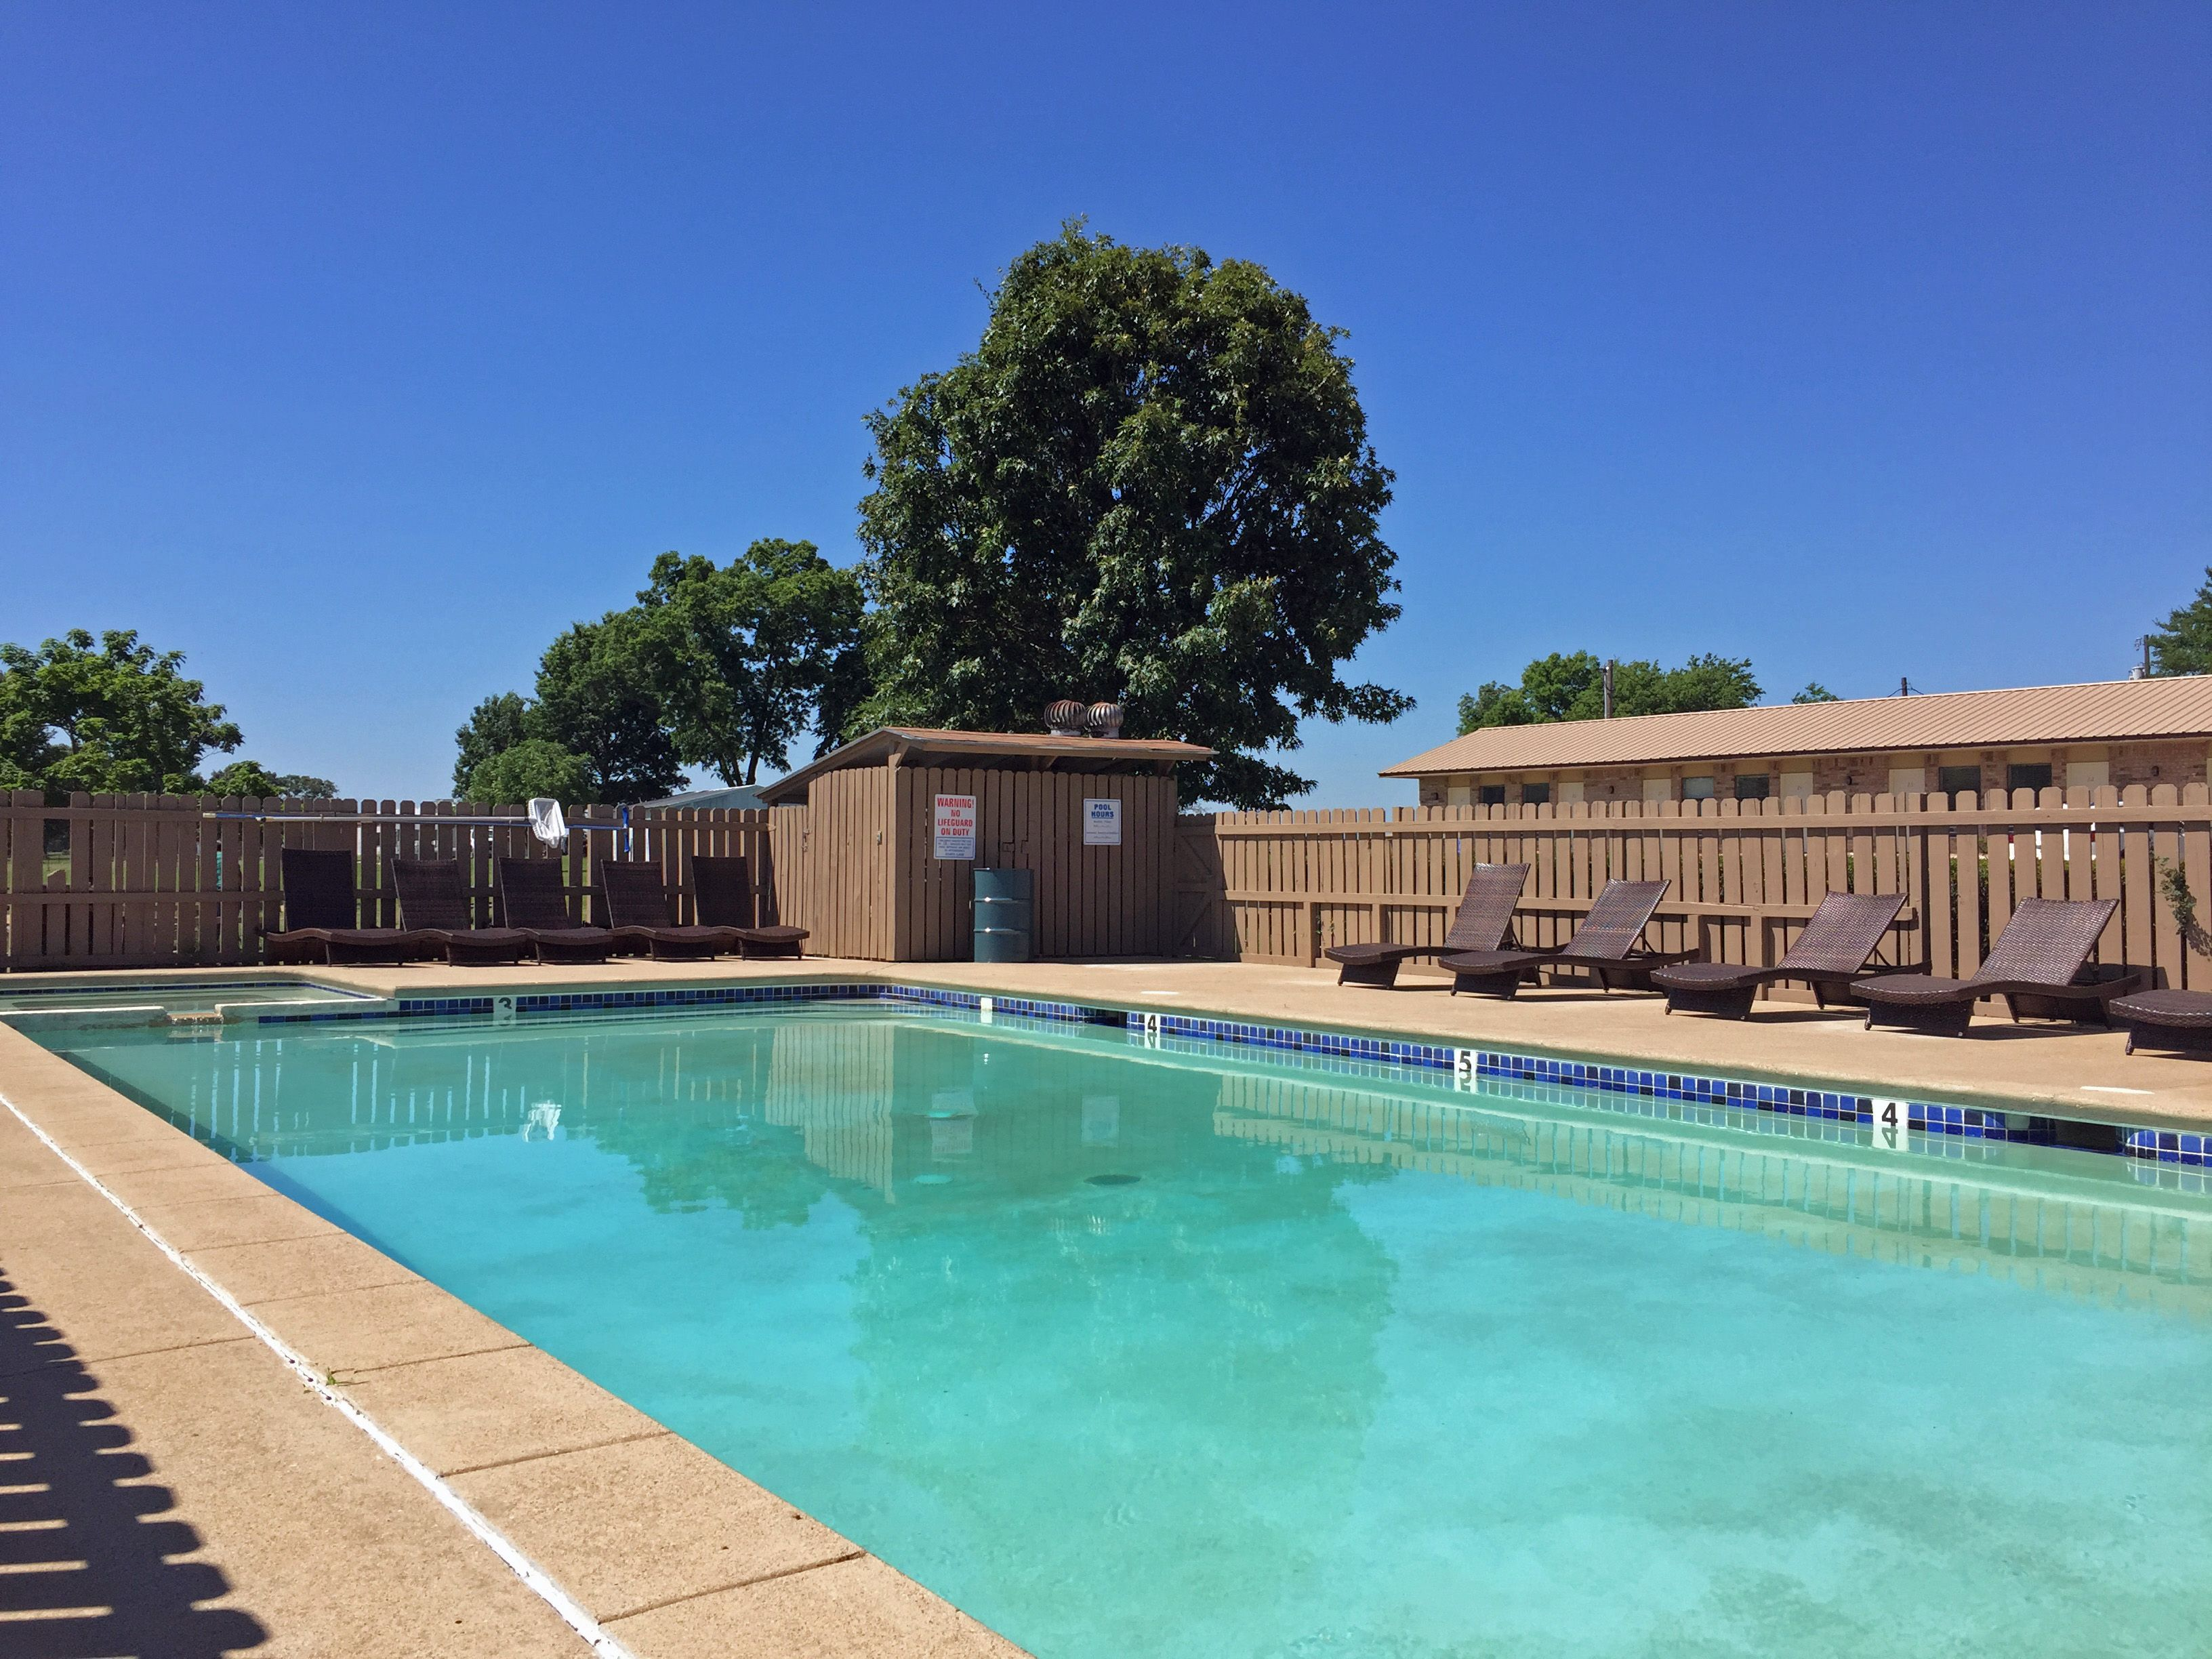 Lake Fork Resort Is The Only Place To Stay With A Swimming Pool Lake Lake Fork Resort